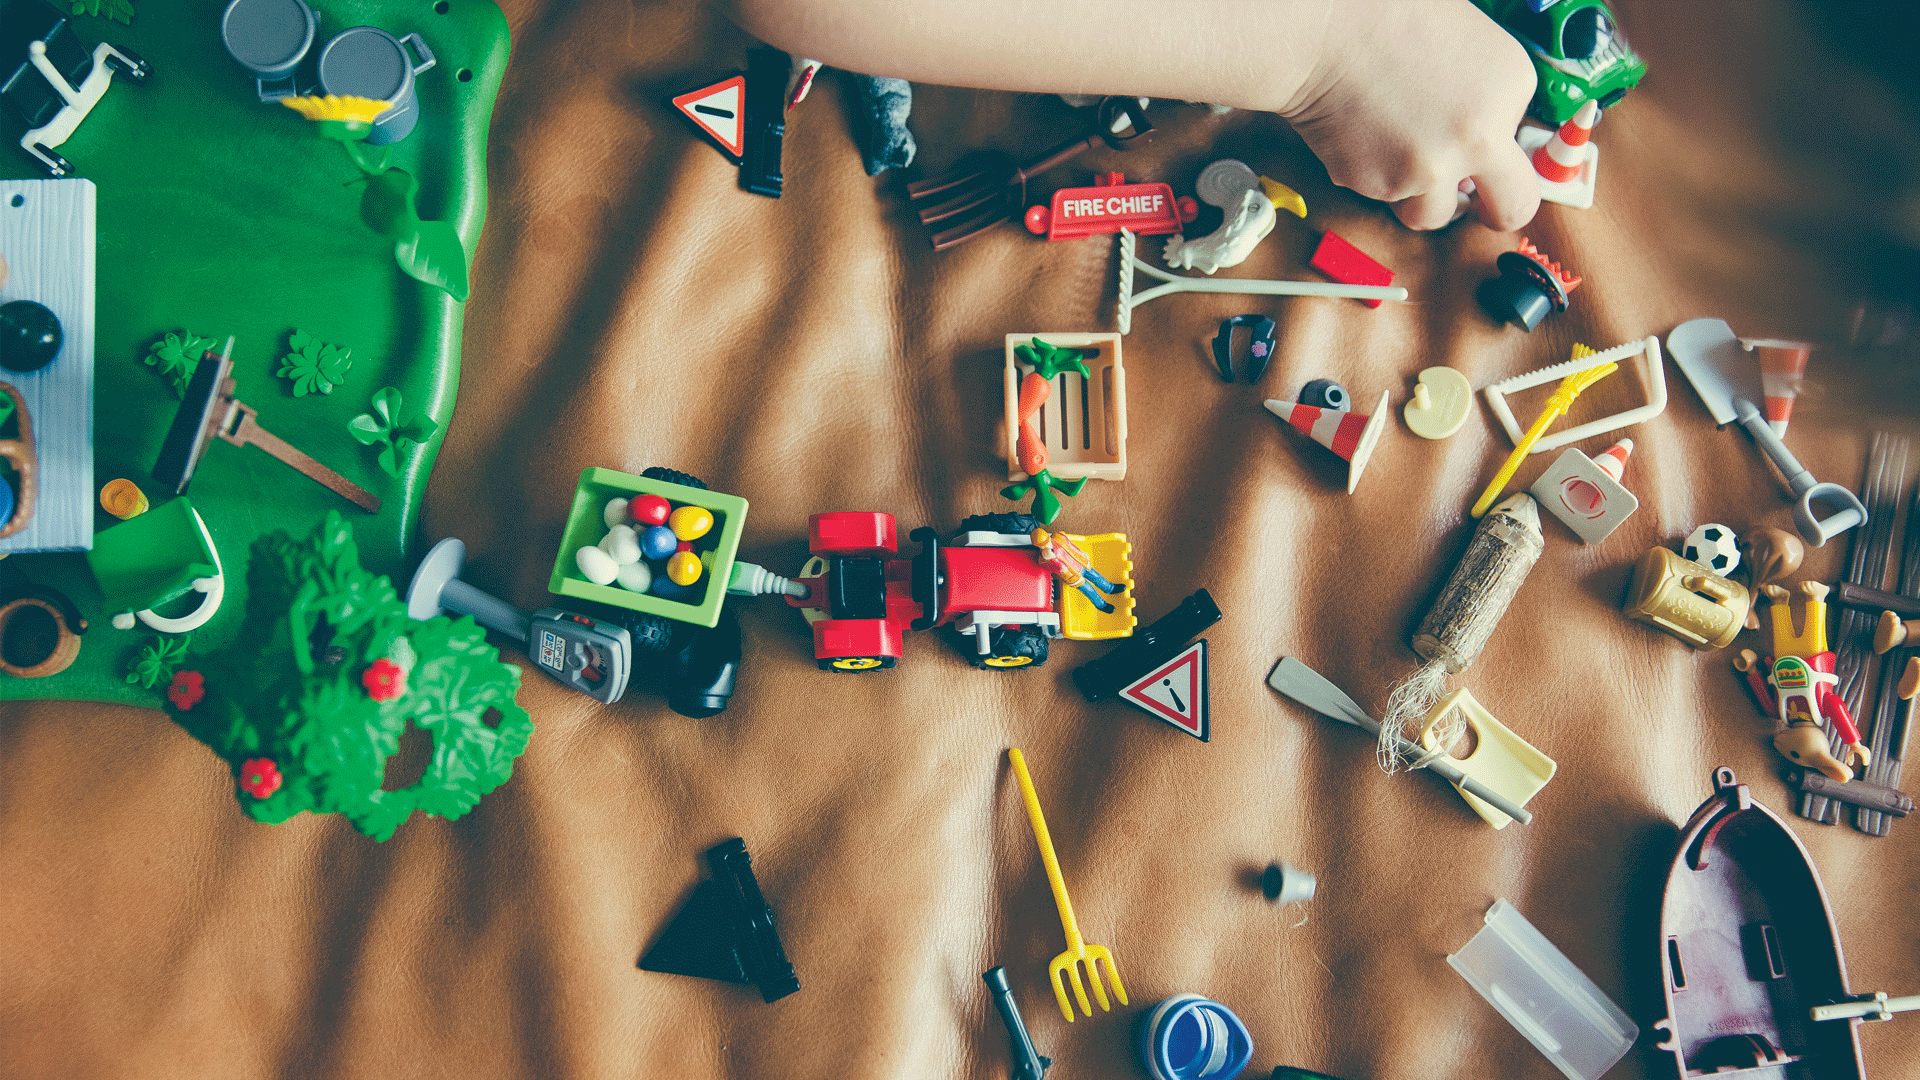 Sorting Out The Kids' Clutter